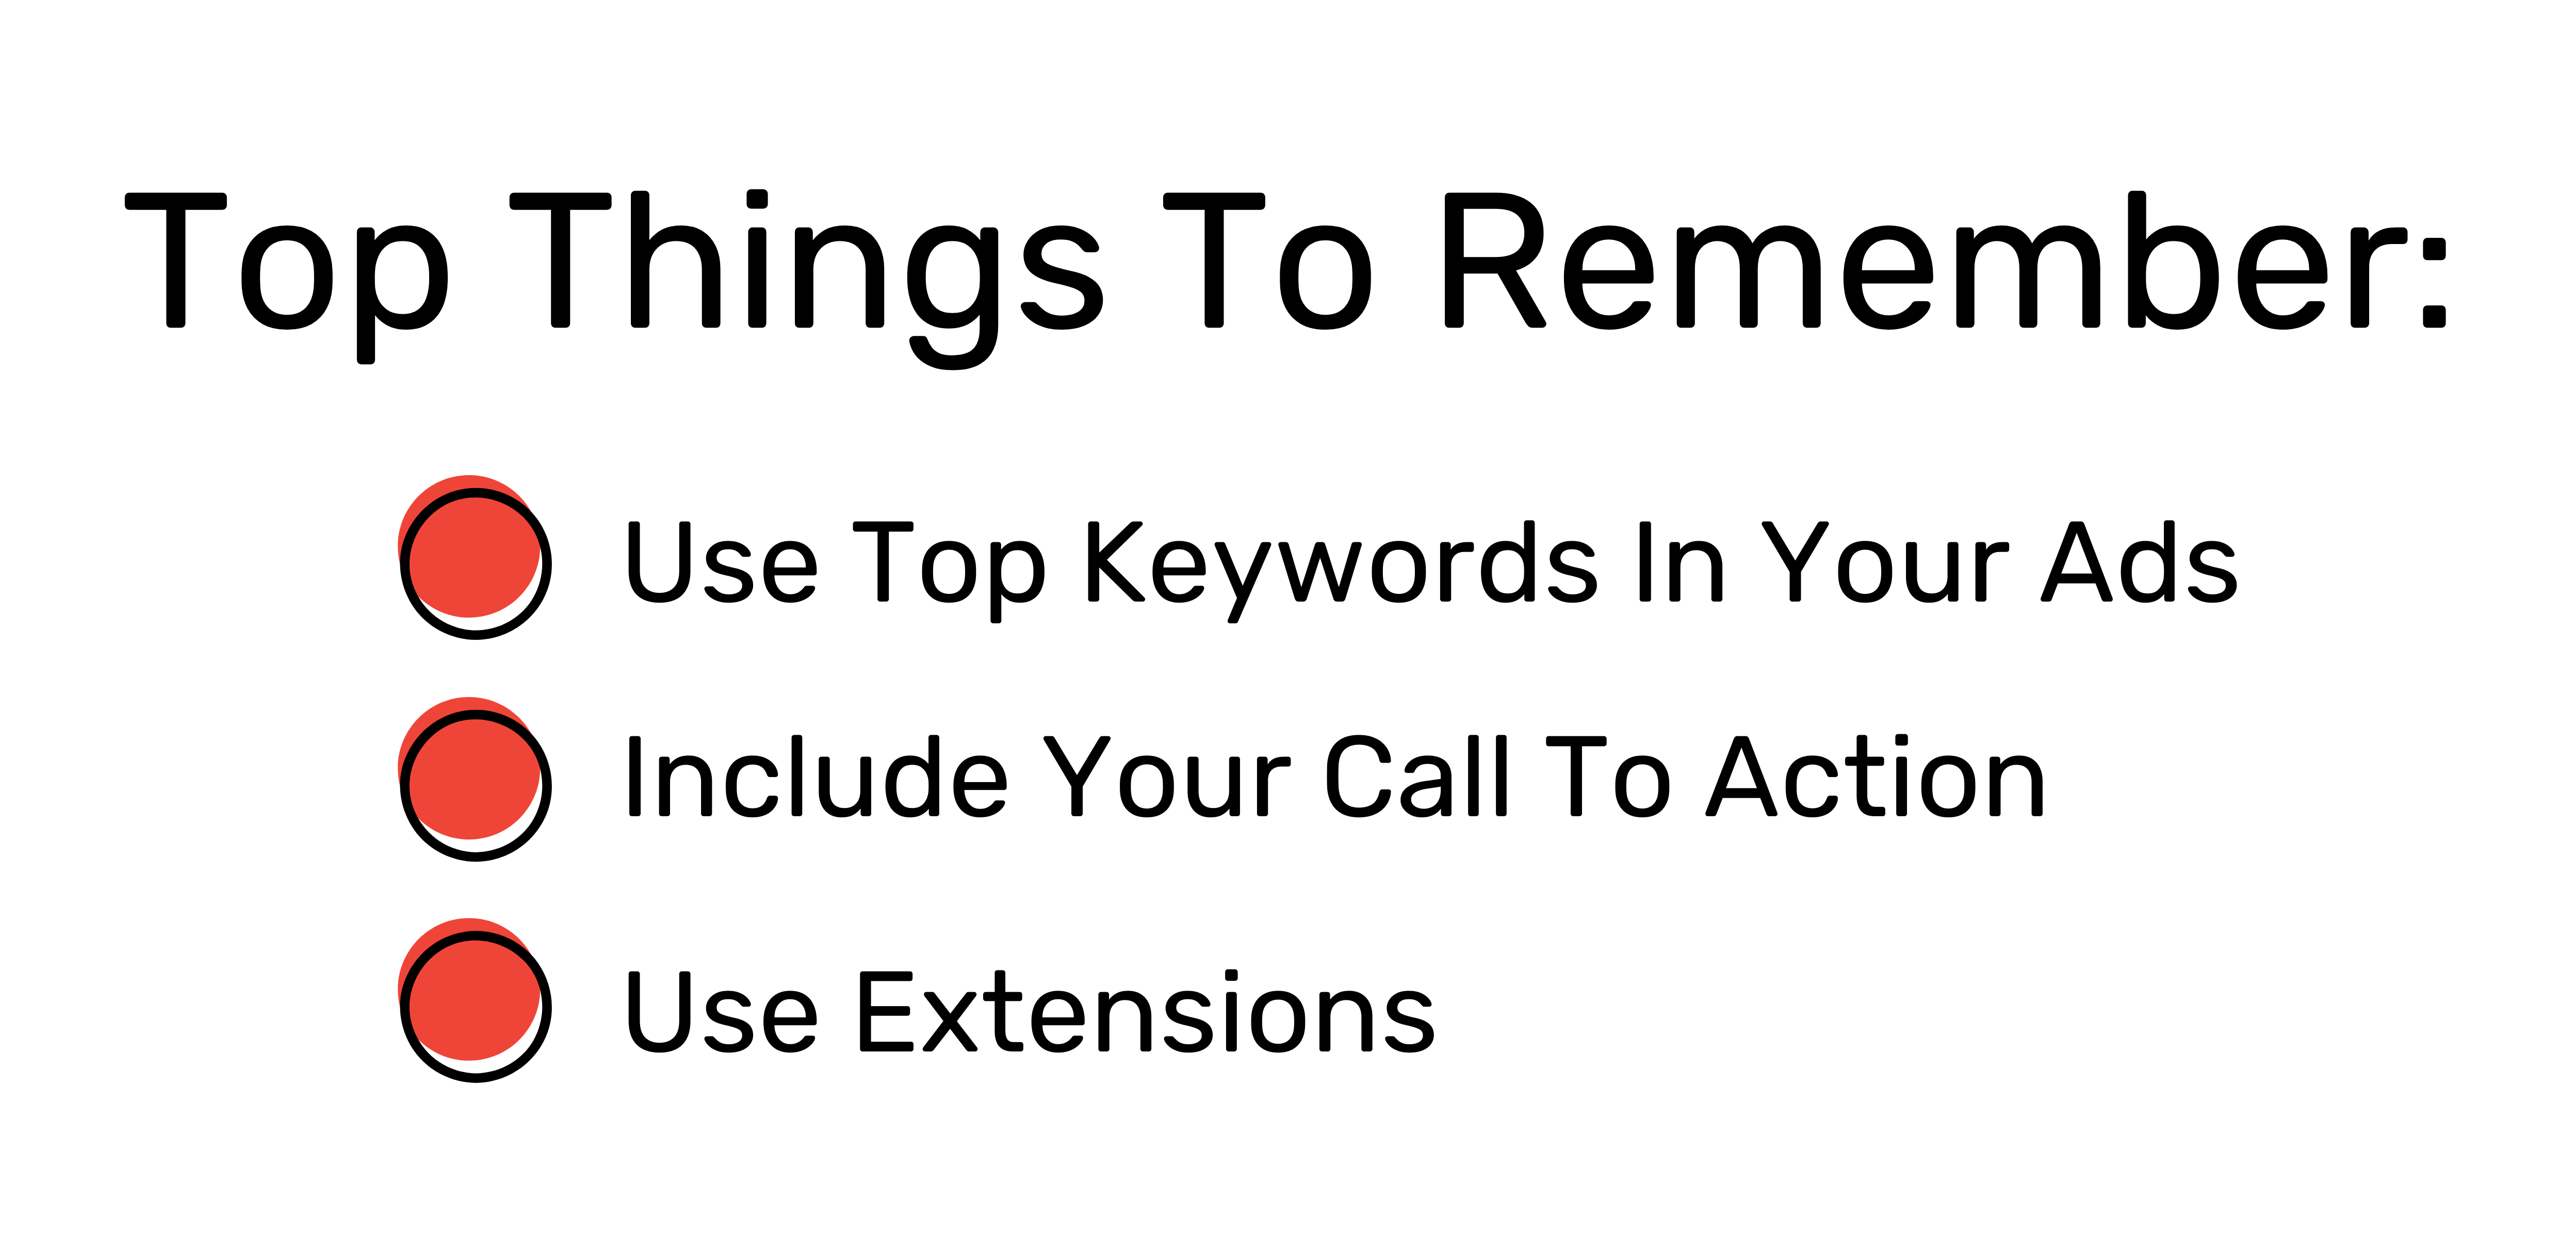 Top things to Remember: Use top keywords in your ads, include your call to action, and use extensions